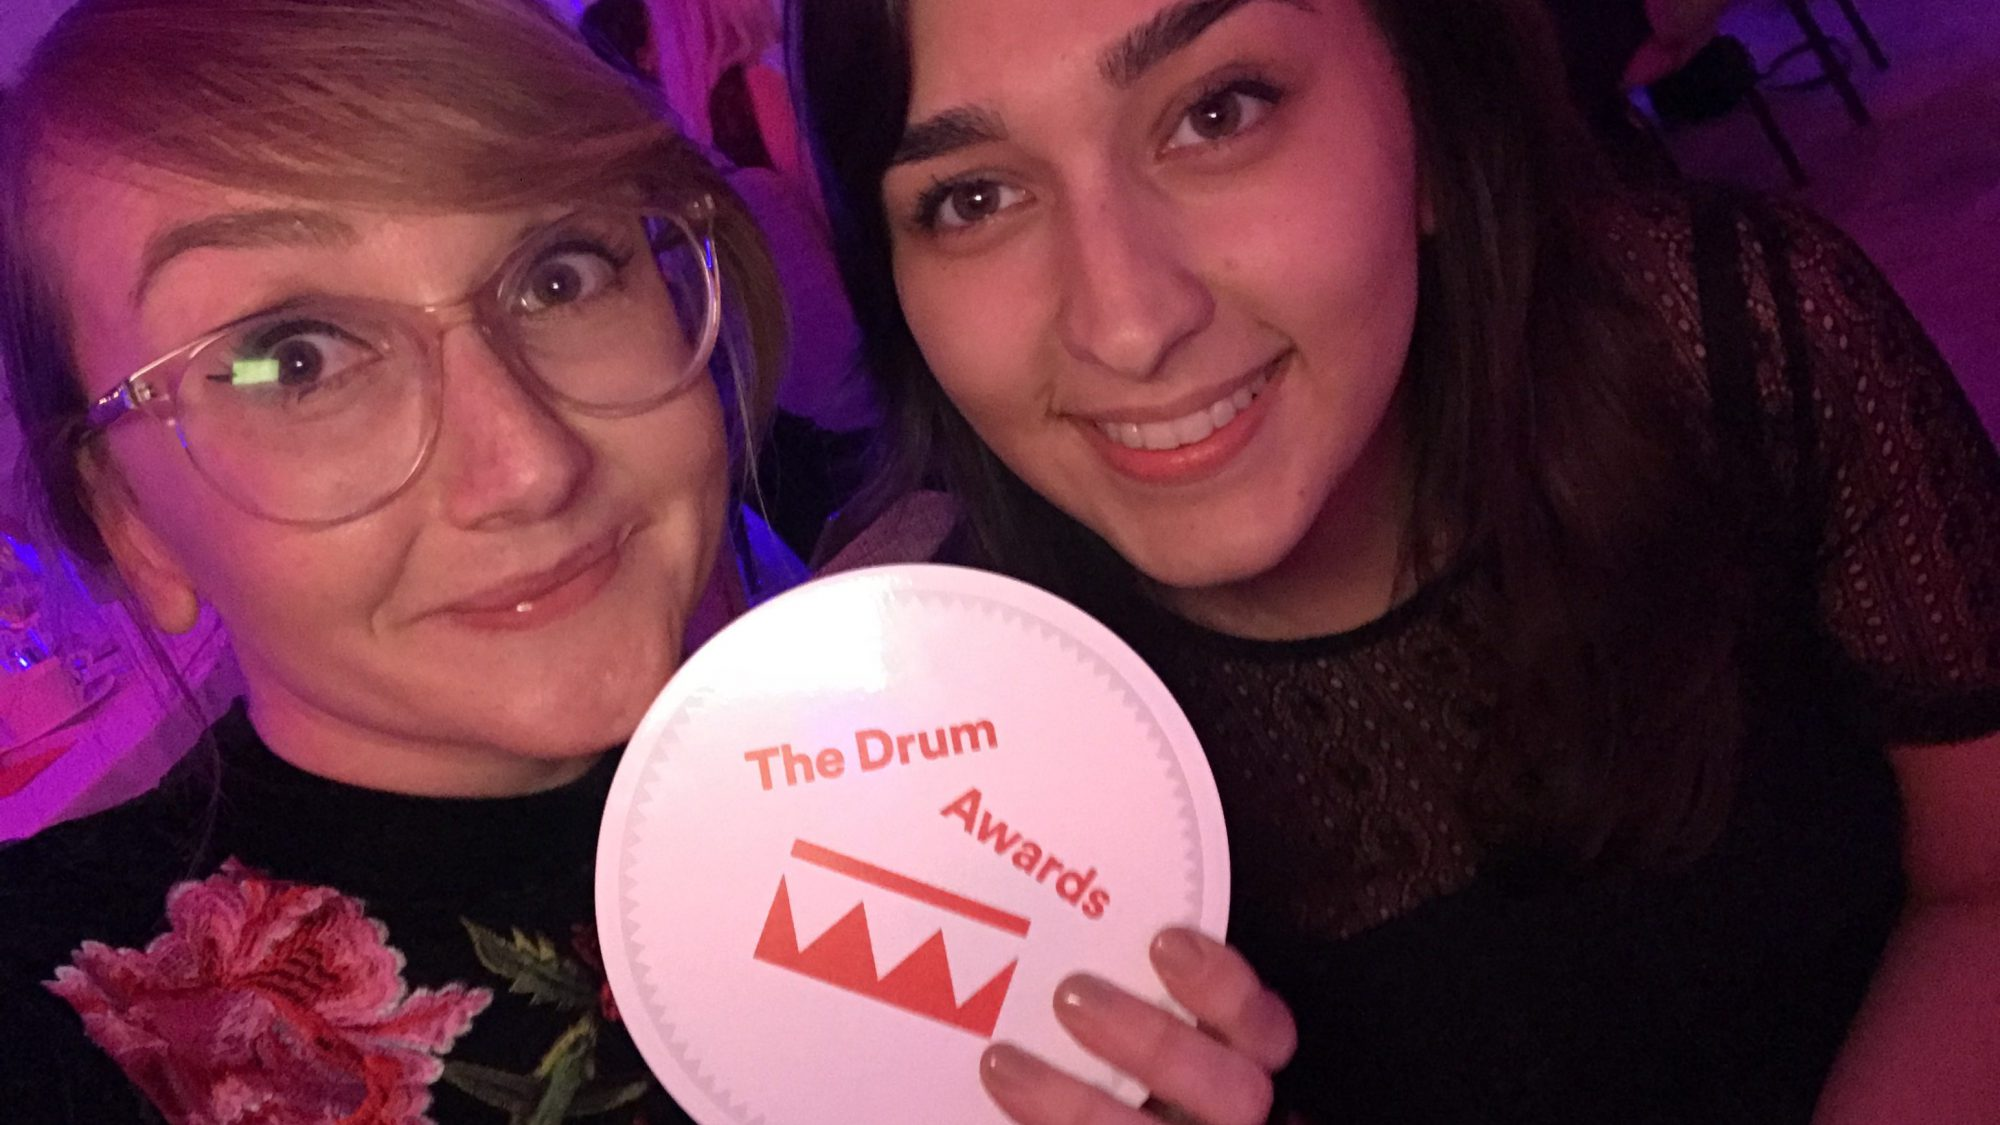 Raw London's Charlotte Harris and Yasmina Mermarian accepting Gold at The Drum Content Awards 2018